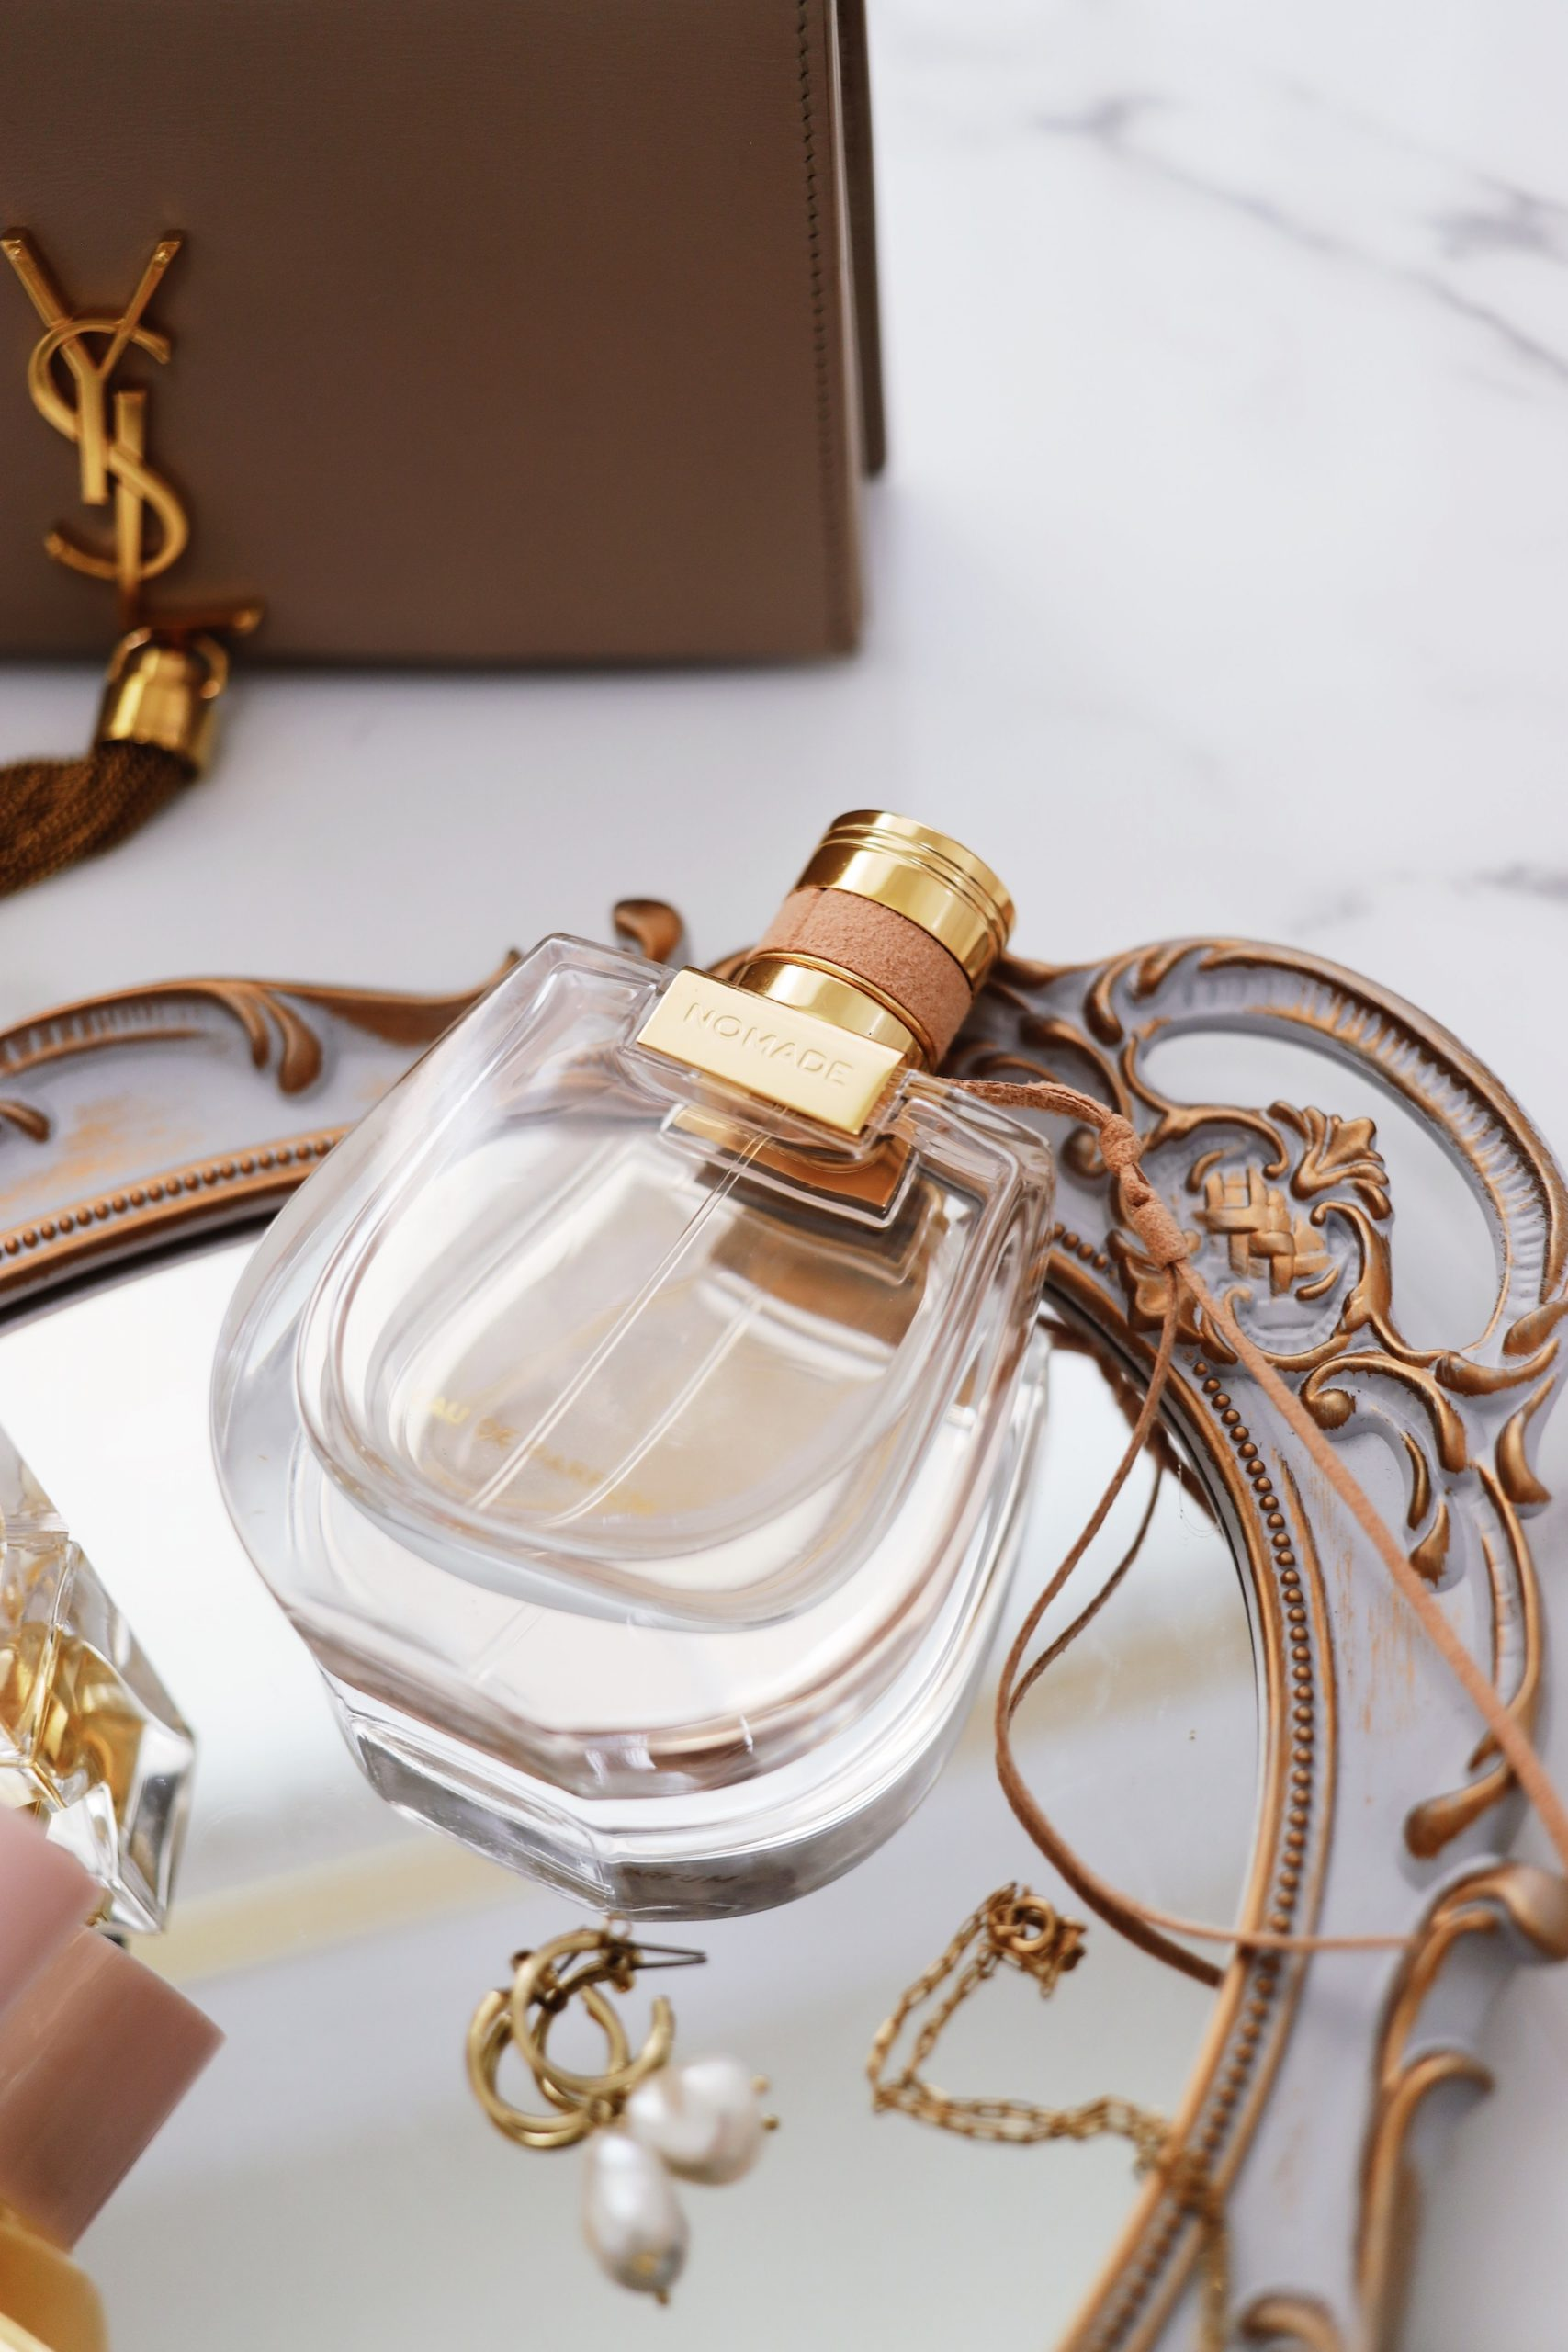 My 5 Signature Fragrances Every Woman Needs